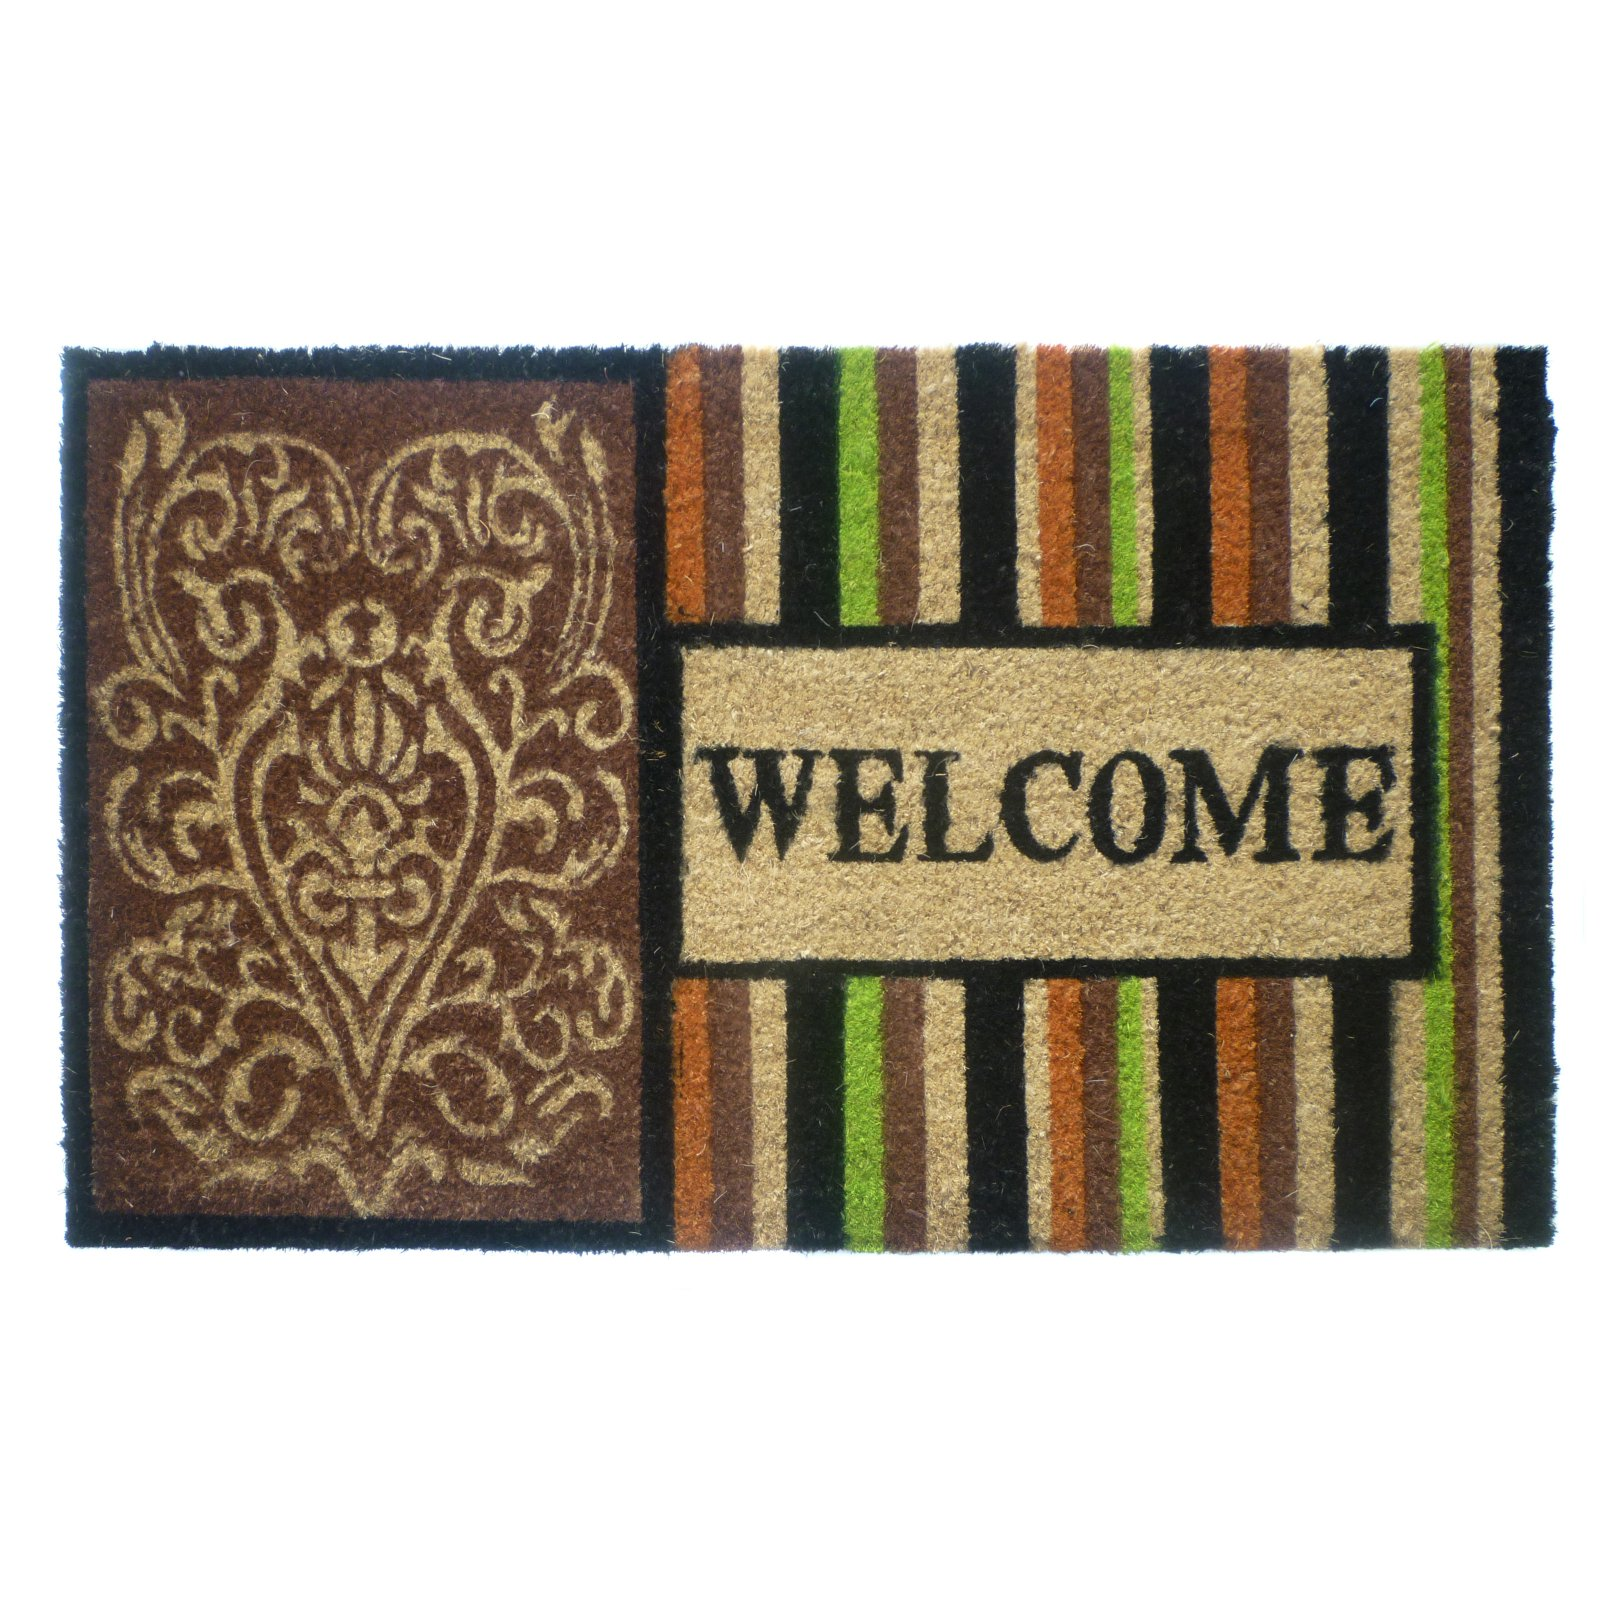 Geo Crafts Welcome Door Mat - 3 Stripes